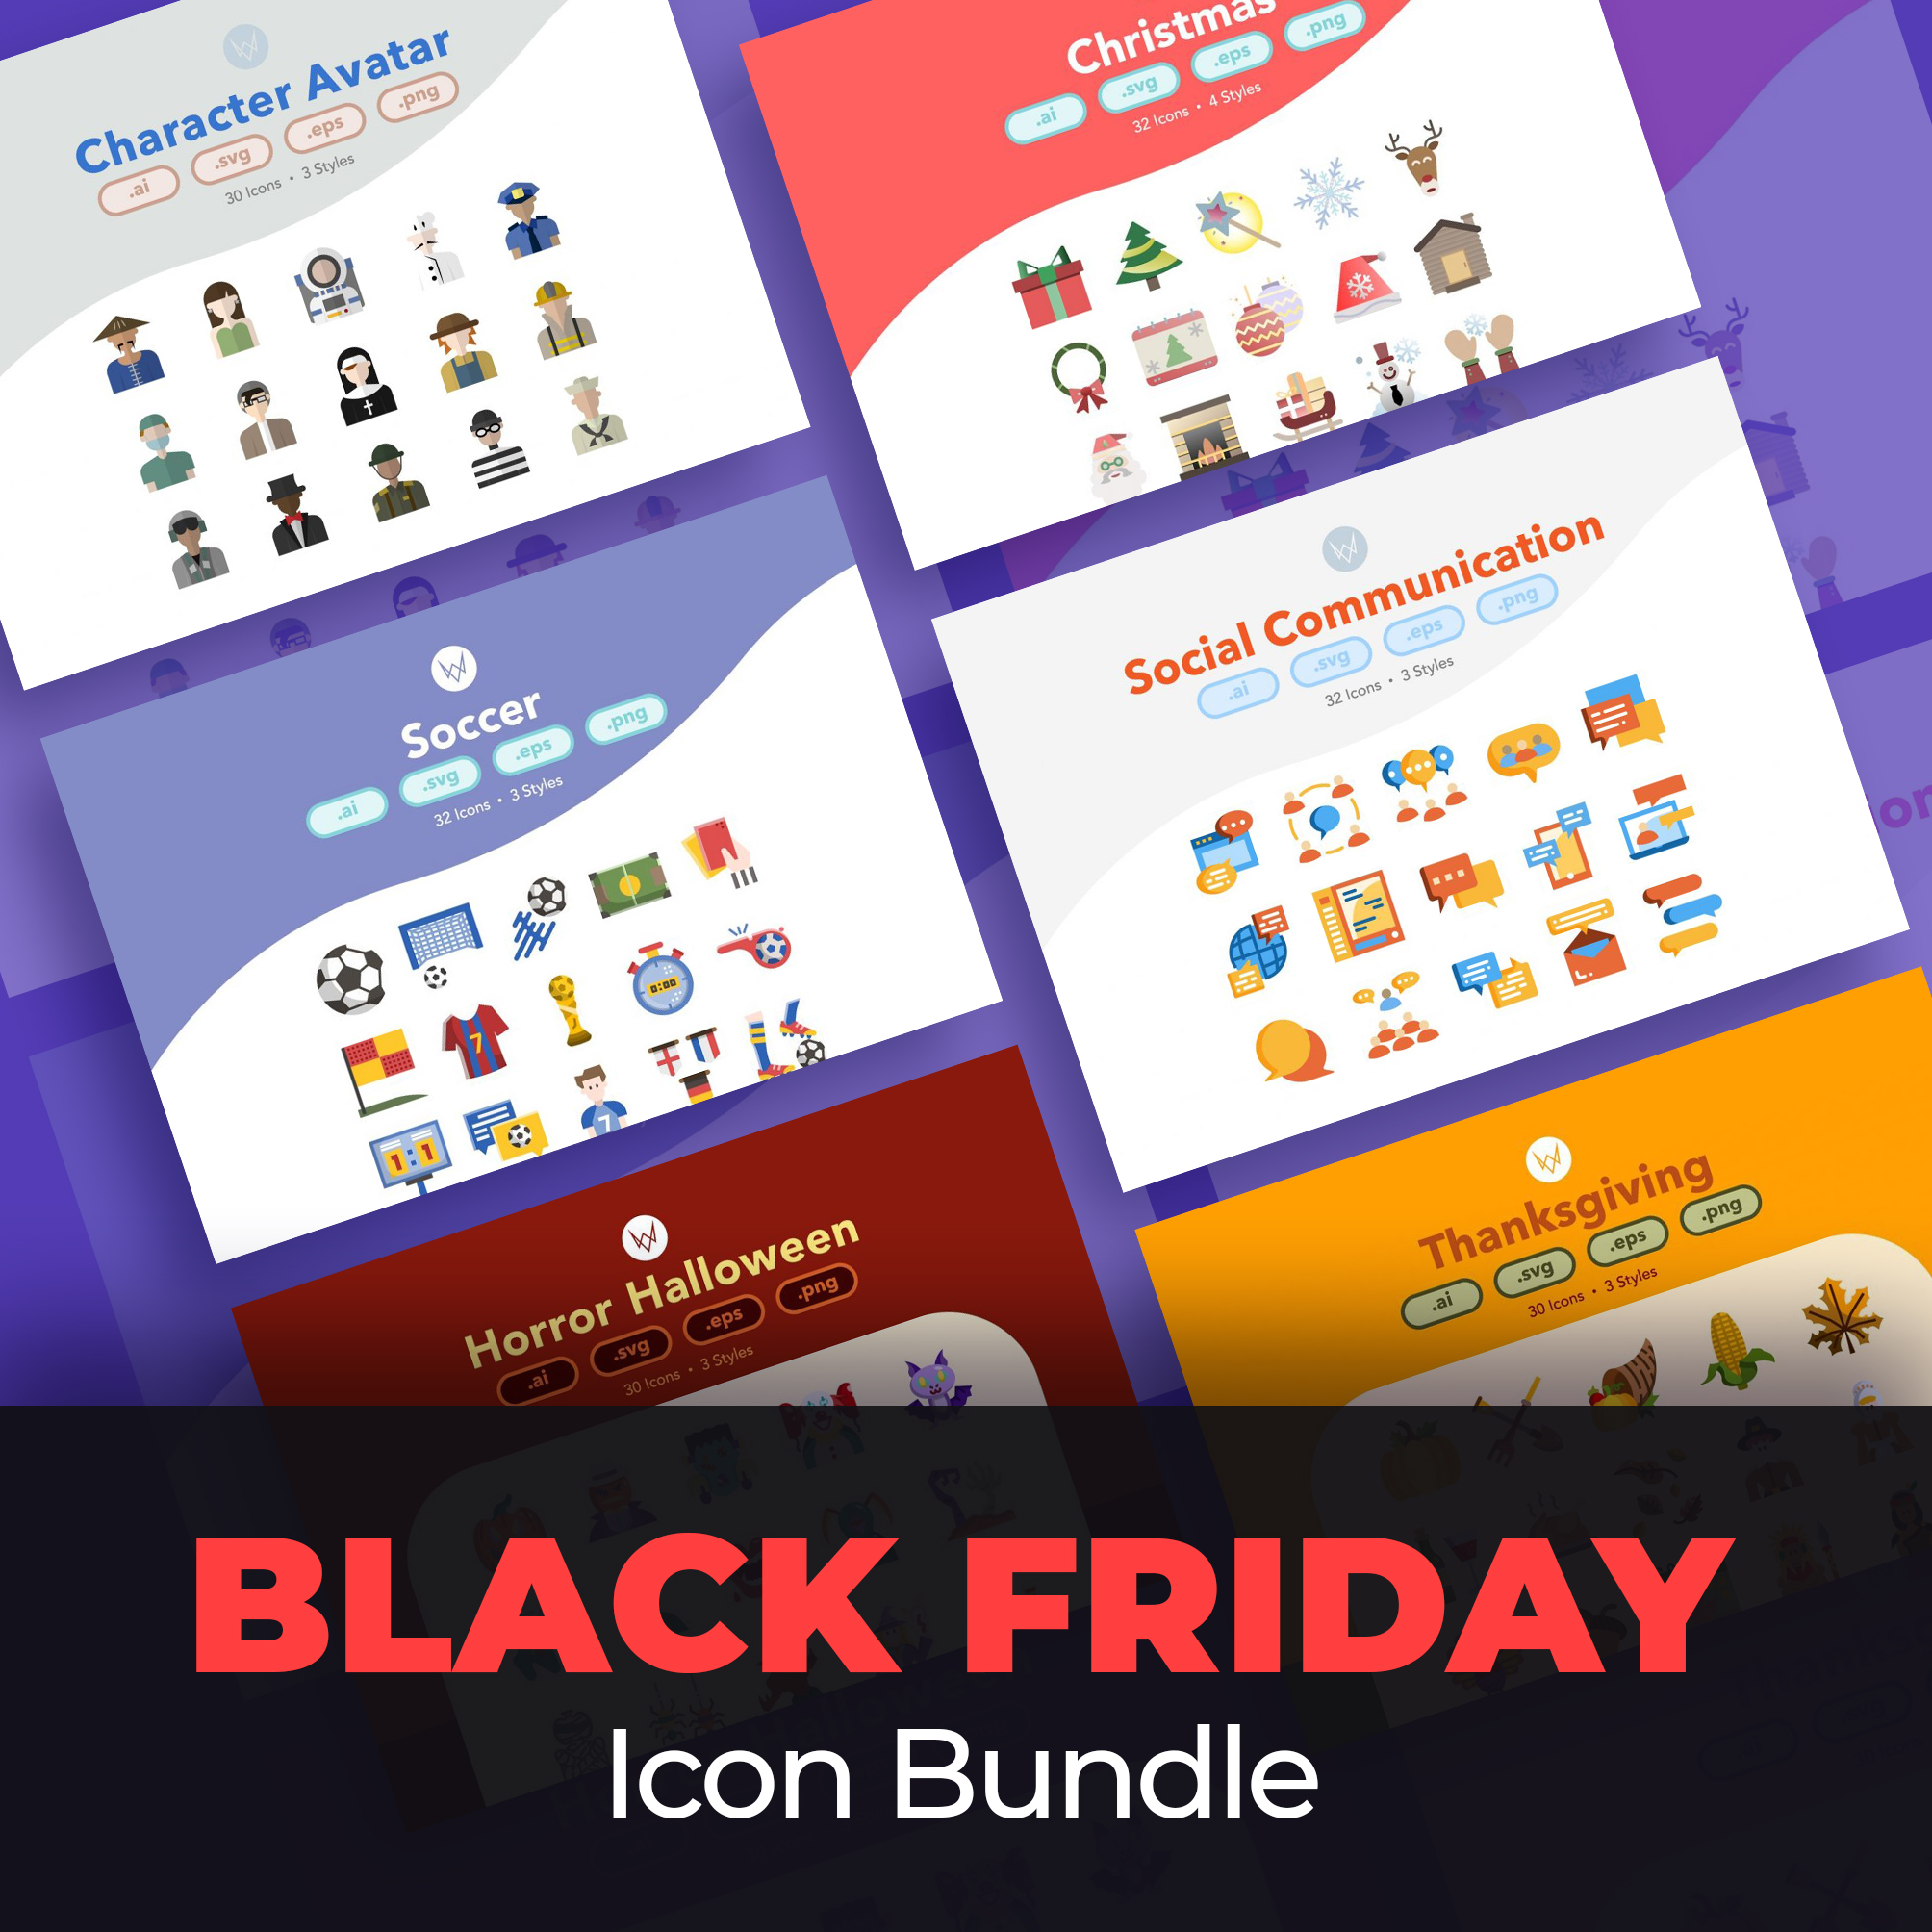 60+ Best Black Friday and Cyber Monday Deals 2020. For Designers, Artists and Developers - Black Friday Icon Bundle 1